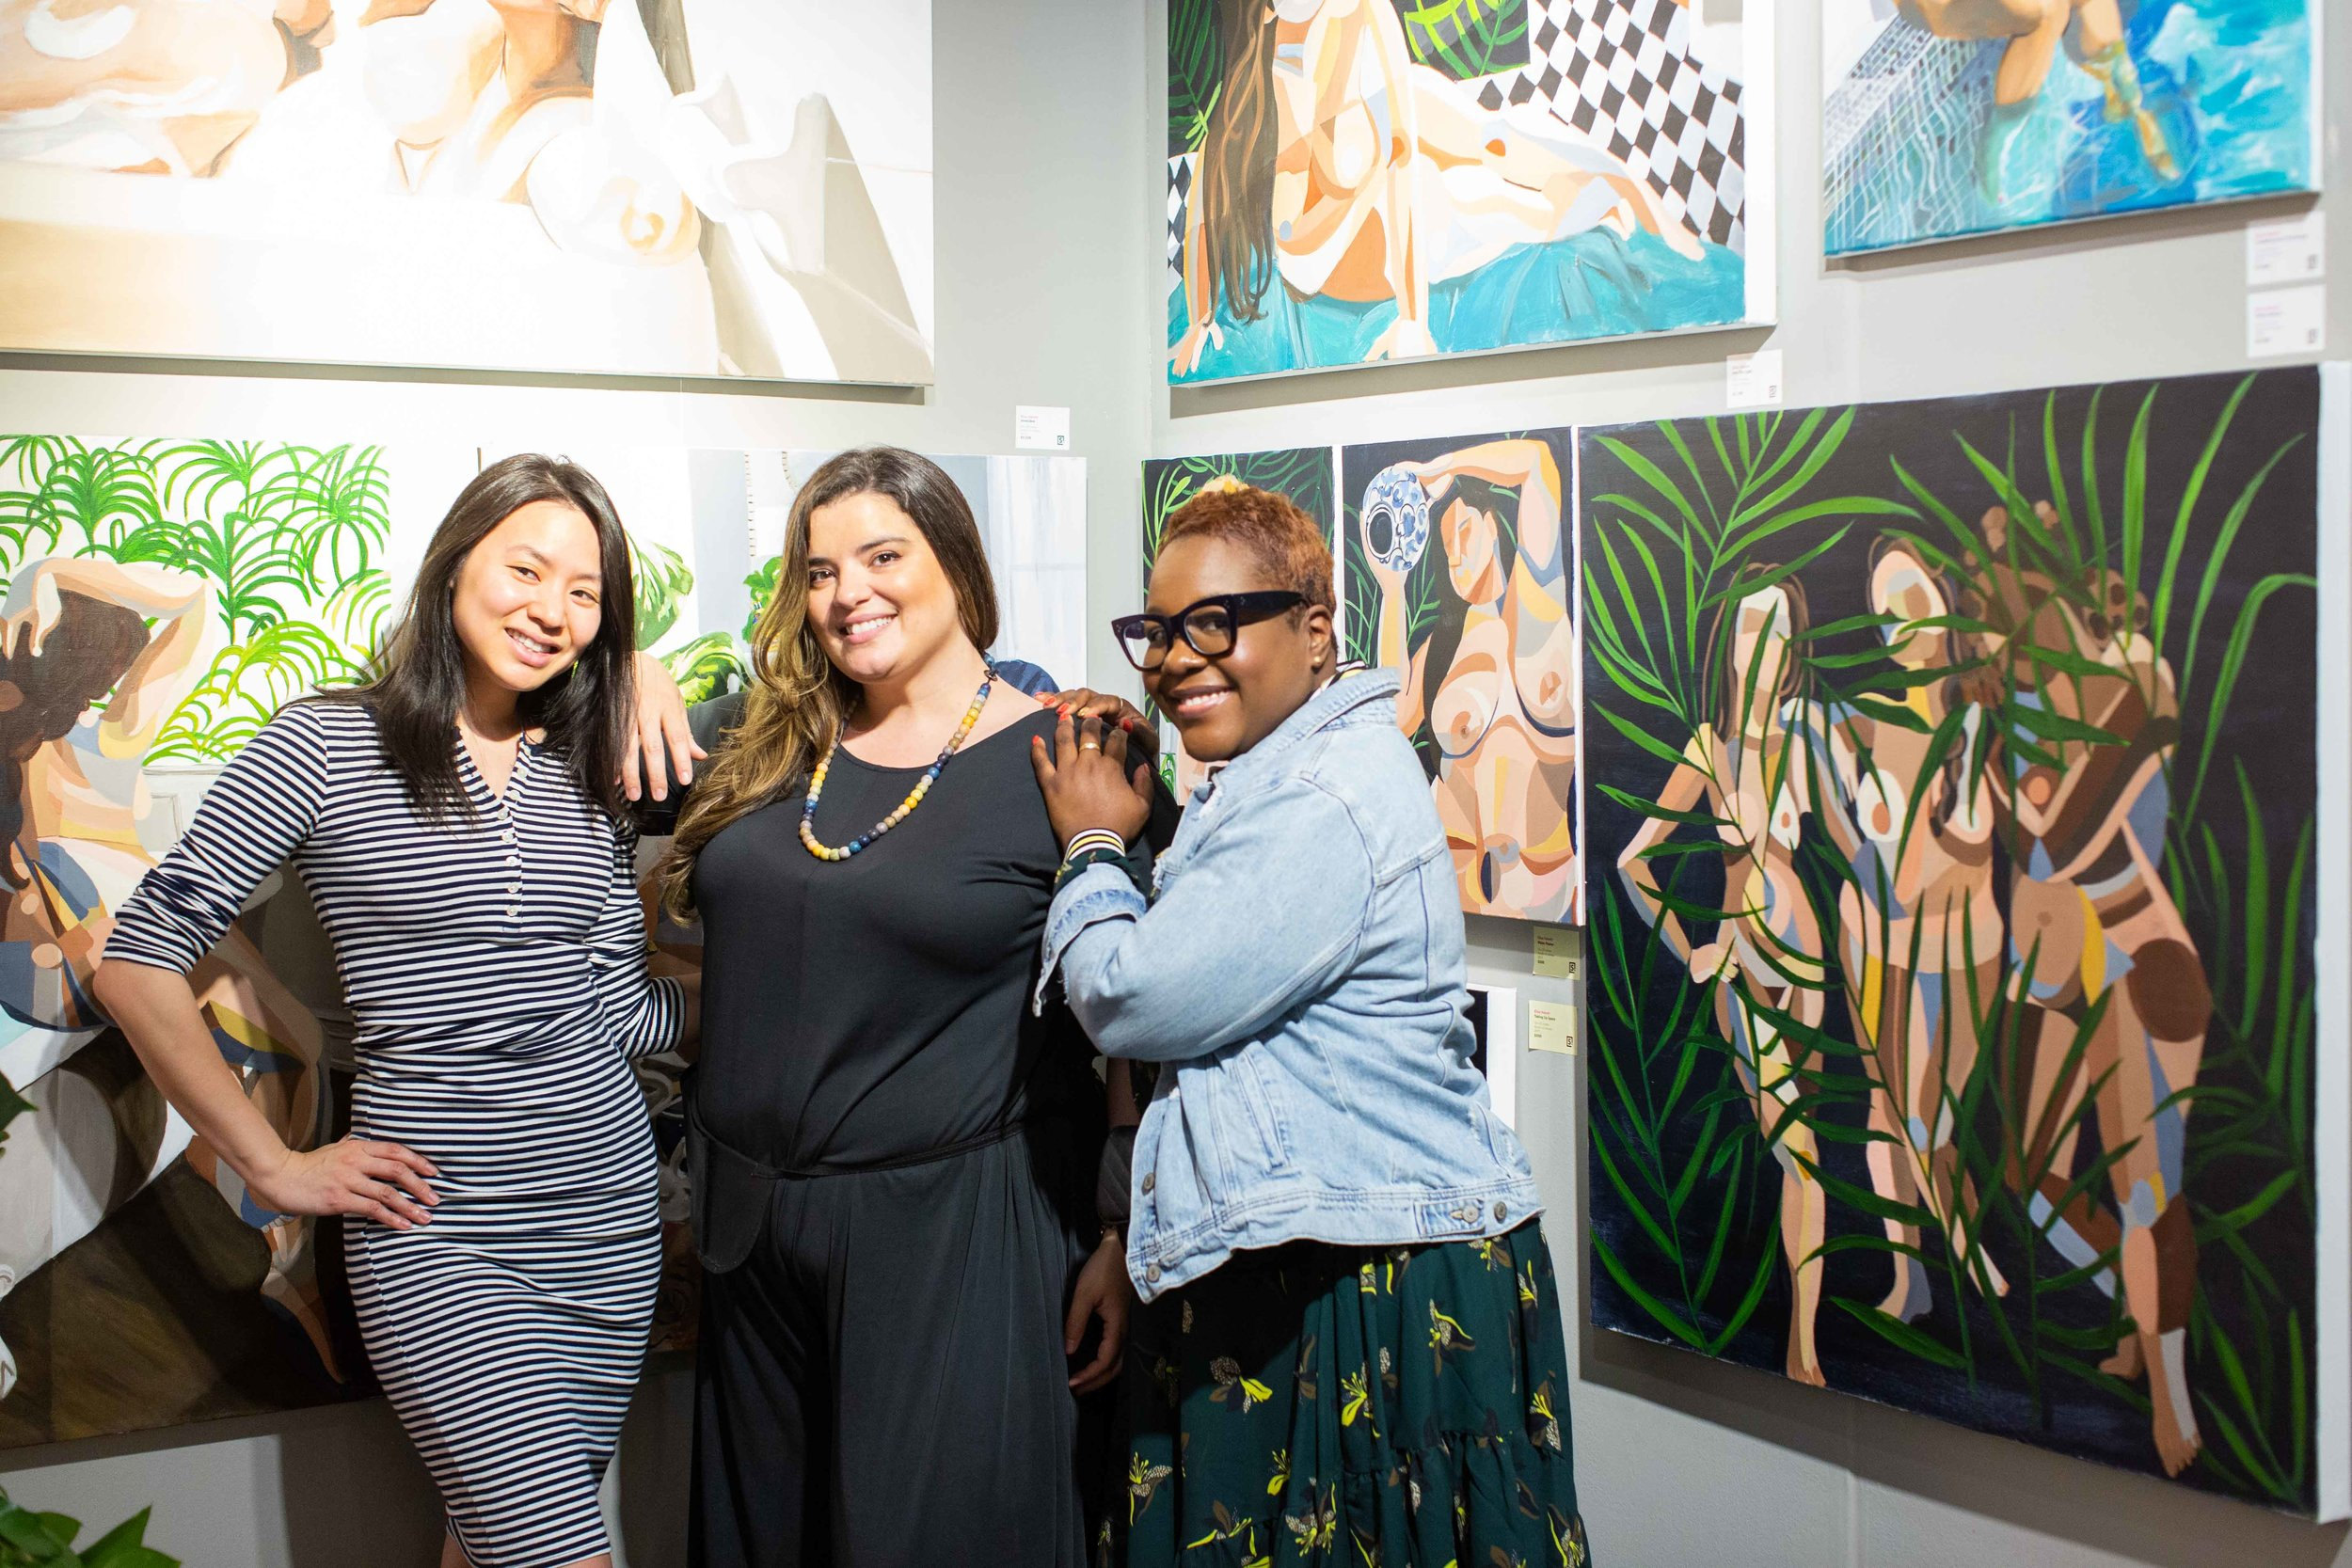 Valenti with Superfine! attendees. Photo by James Miille